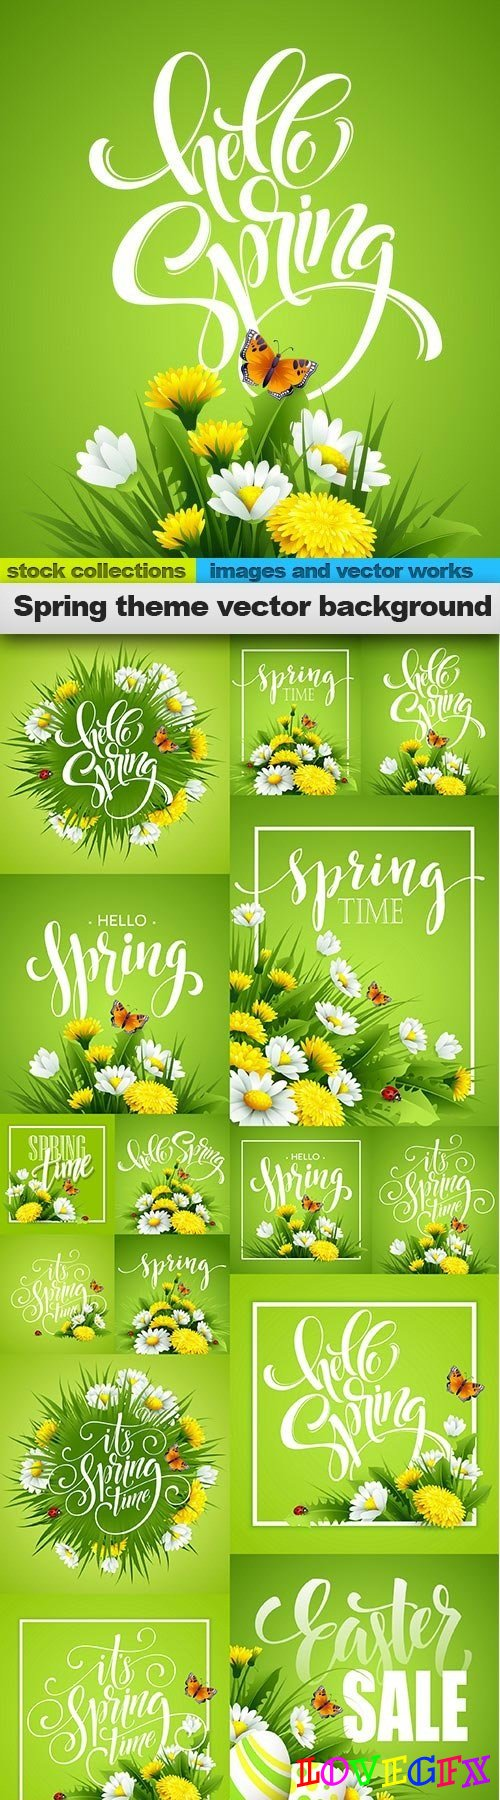 Spring theme vector background, 15 x EPS